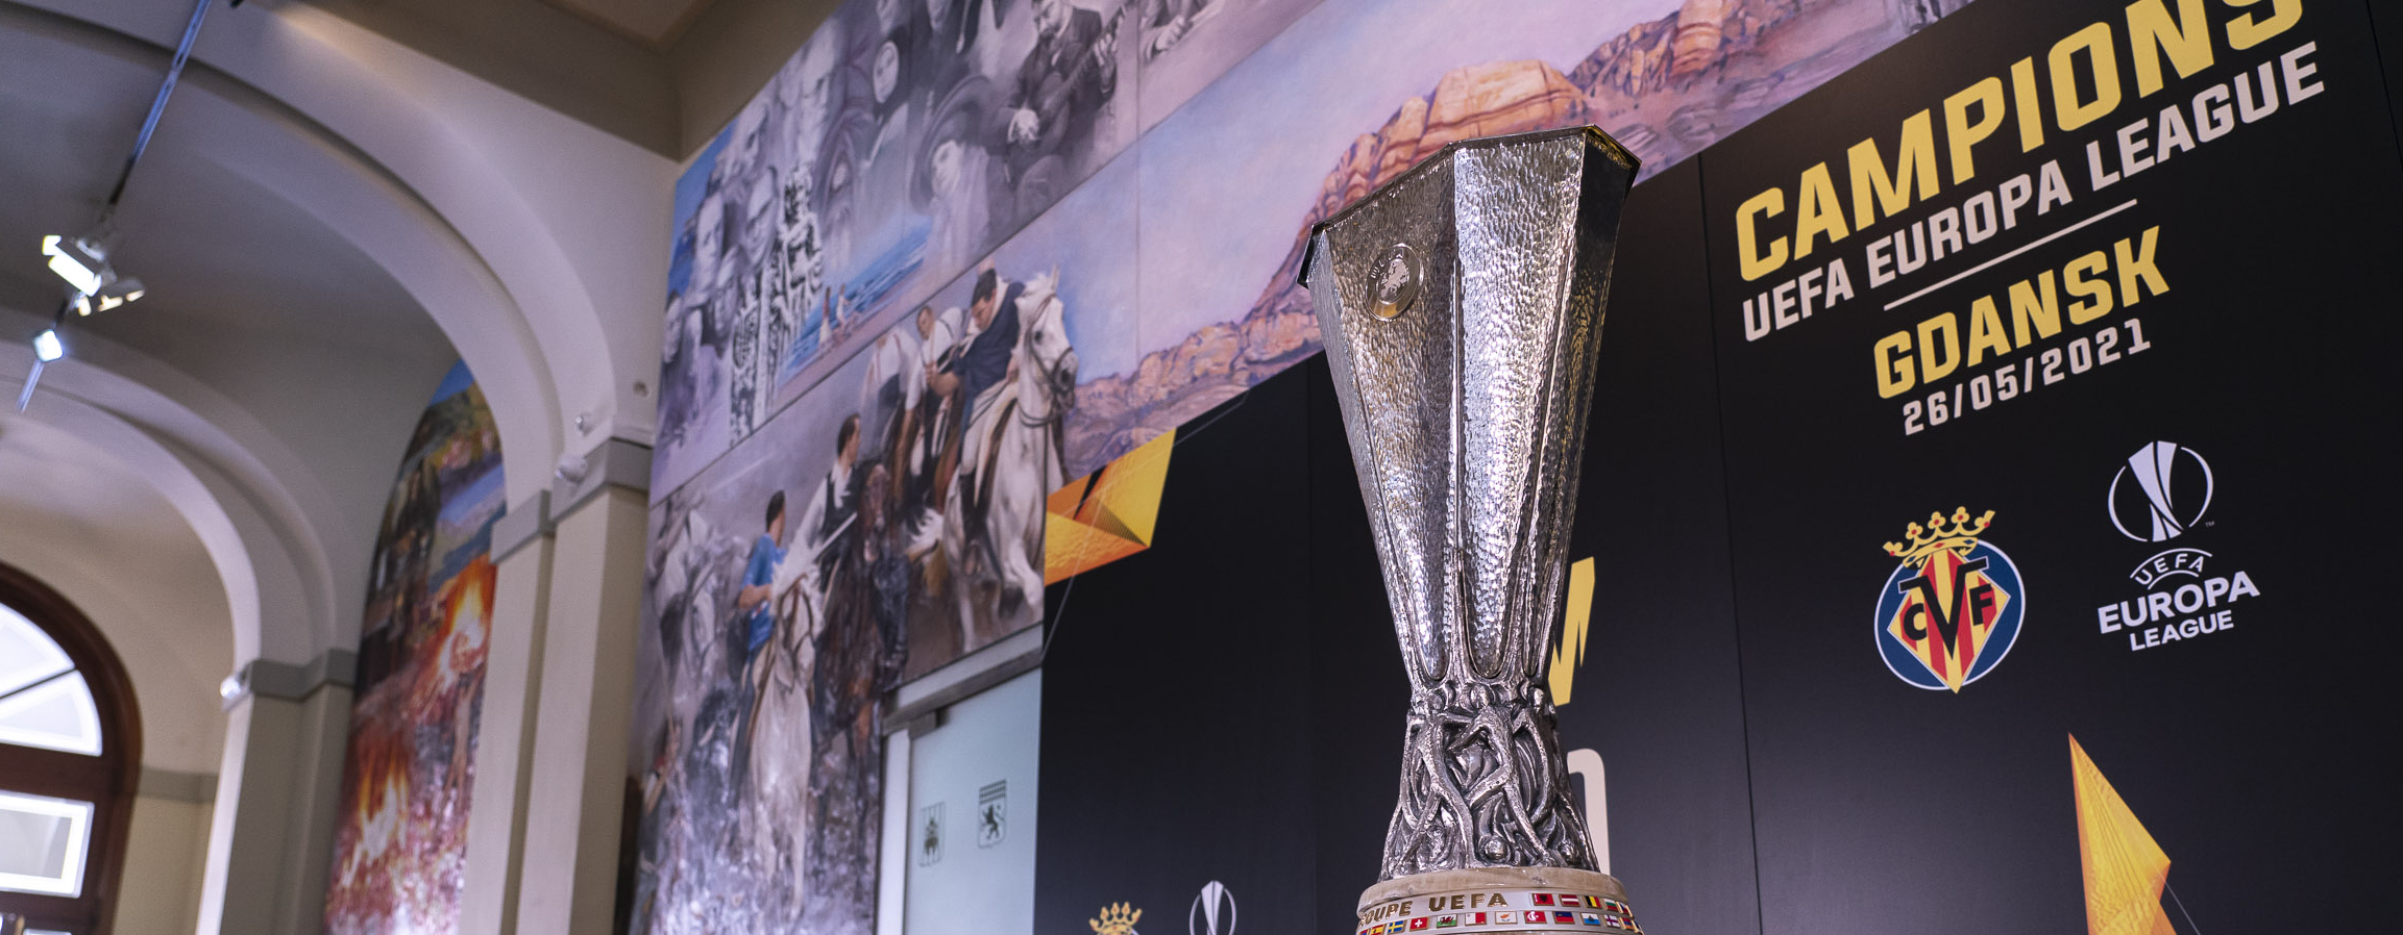 The Europa League trophy is now on show in Castellón